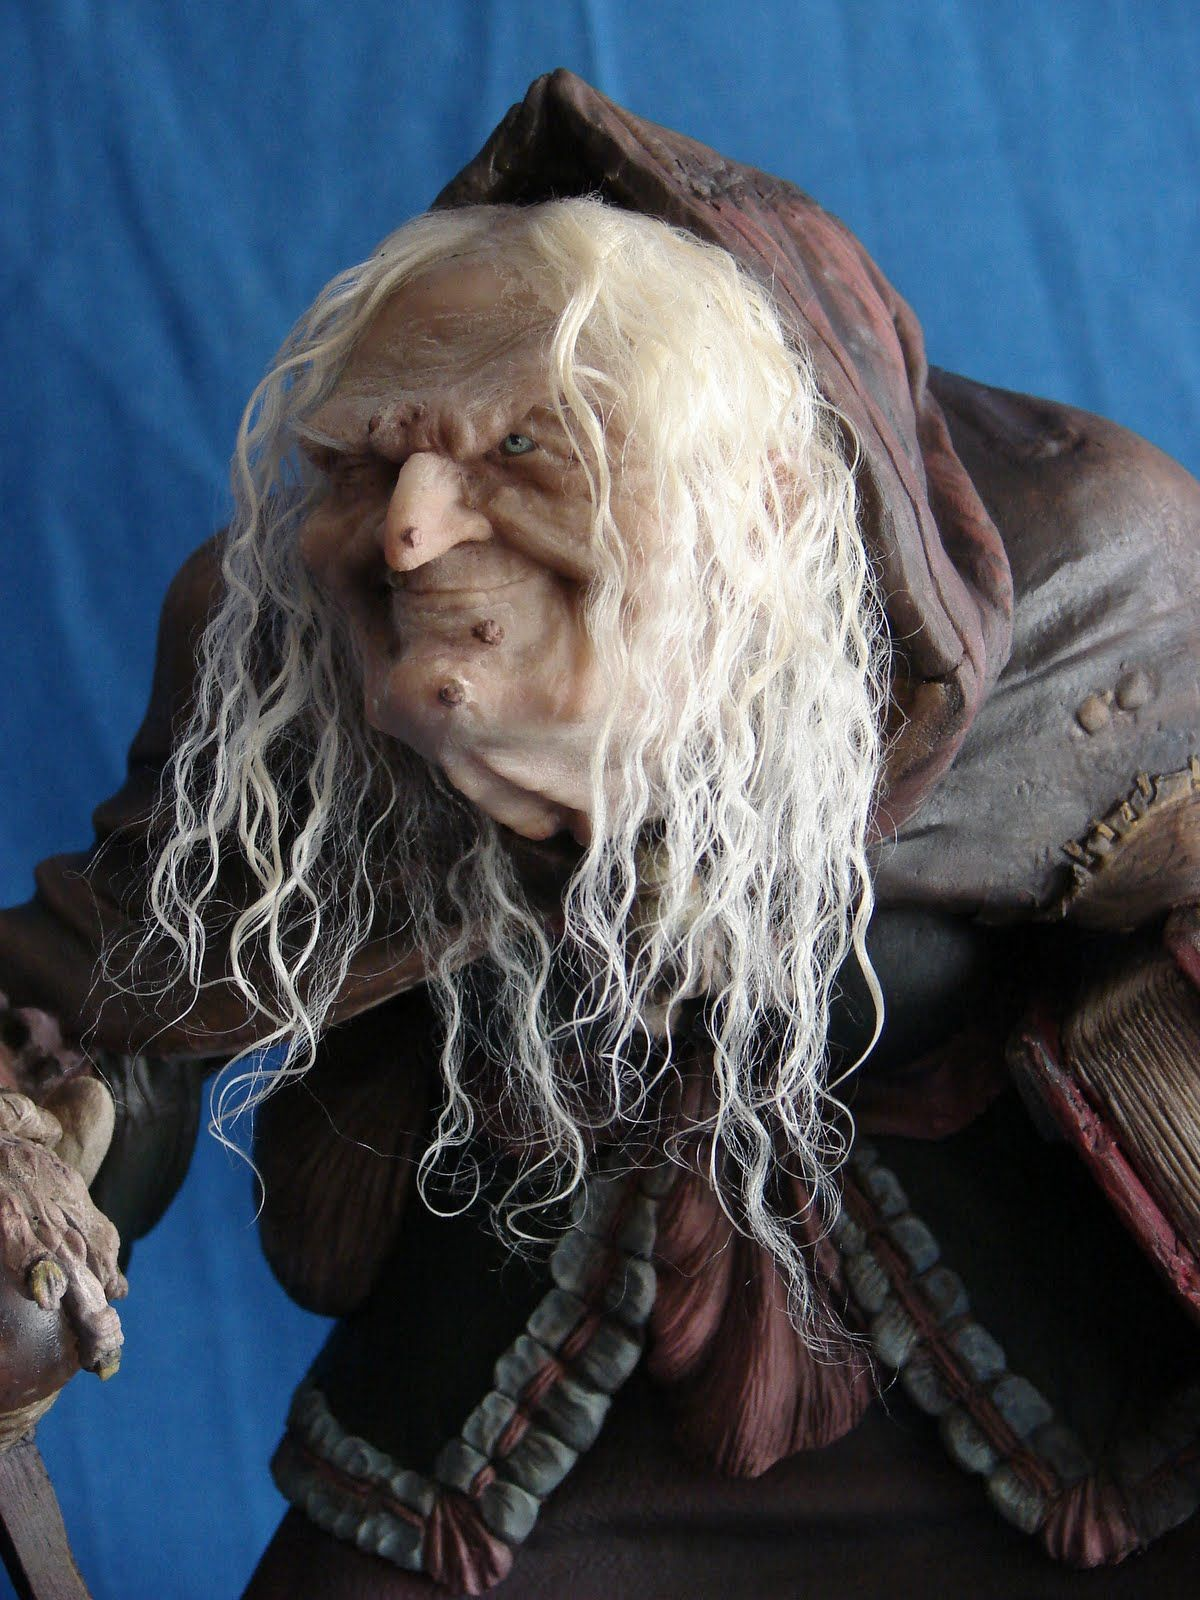 MAURO SANTINI SCULPTURES: Old witch, own creation, 1:4 scale ...